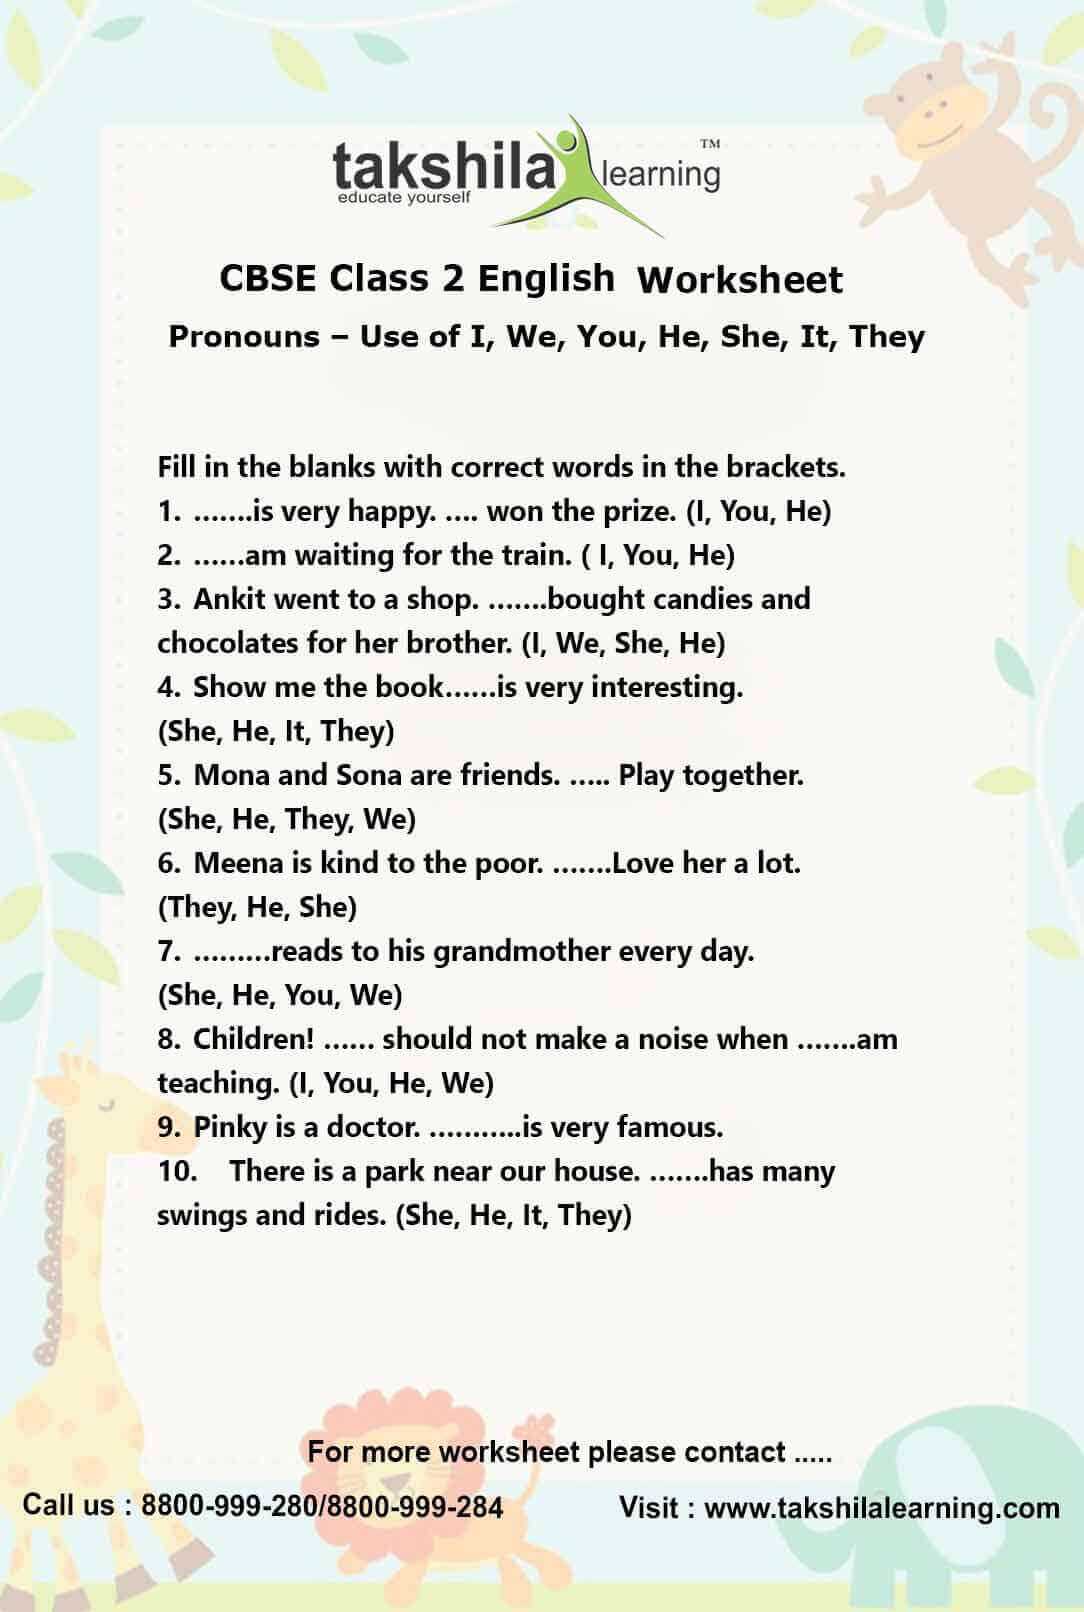 pronoun worksheet class 1 printable worksheets and activities for teachers parents tutors. Black Bedroom Furniture Sets. Home Design Ideas